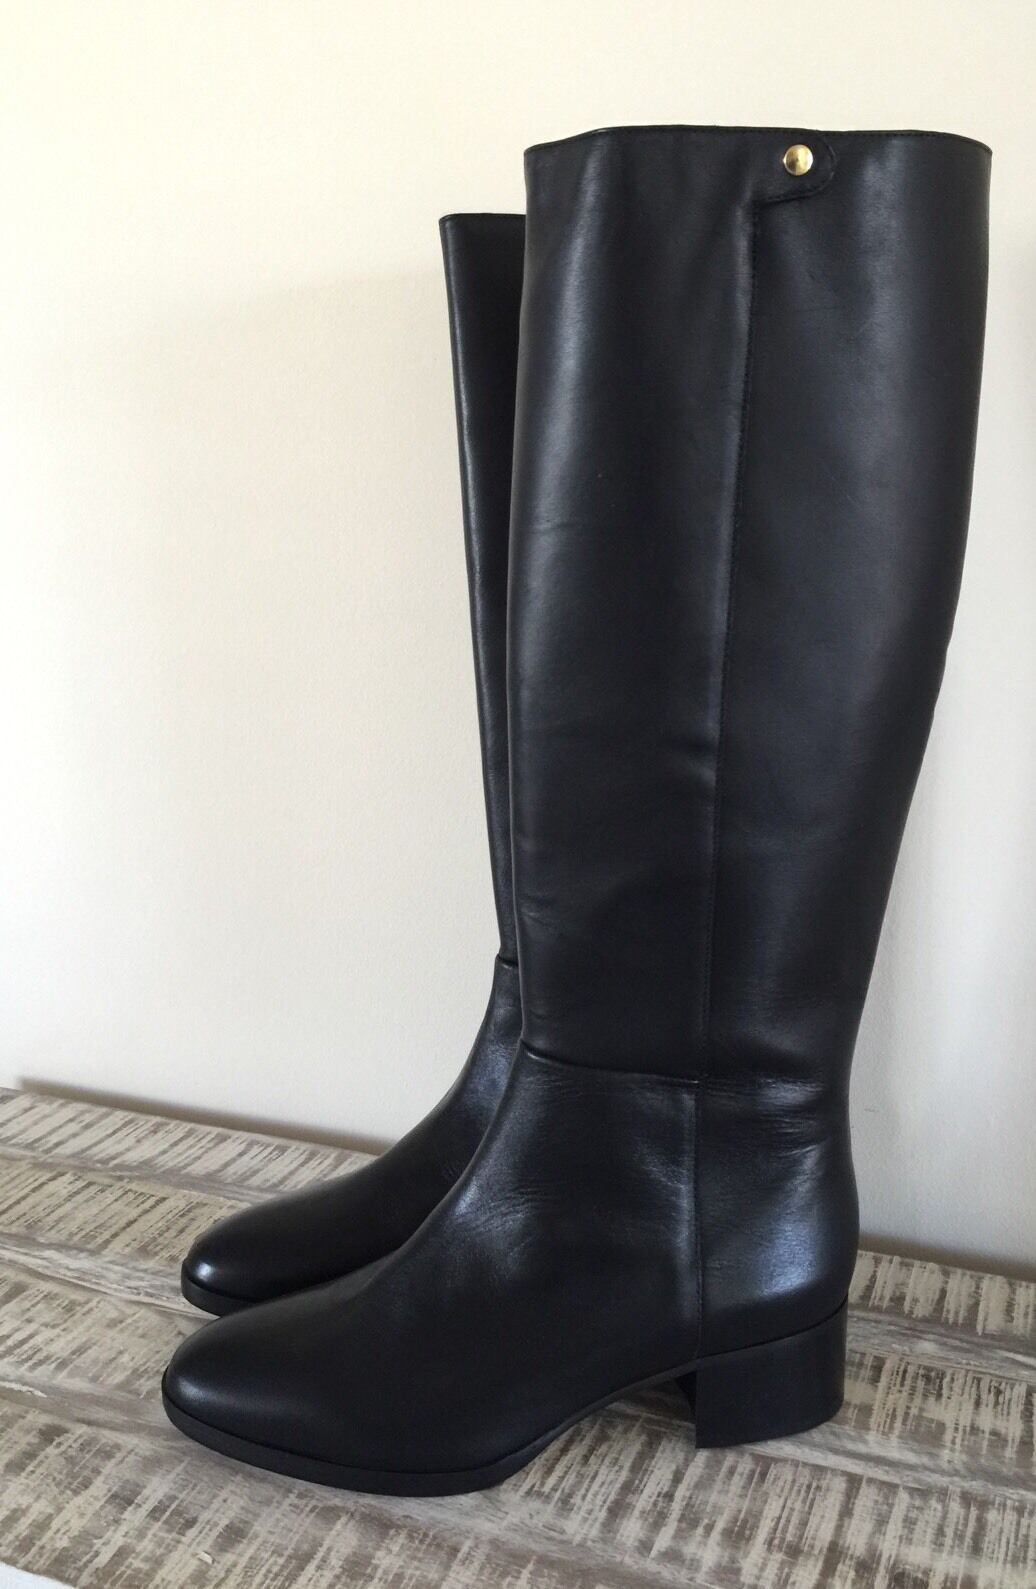 New JCrew  298 Leather Knee Boots Sz 10.5 Black F4980 Regular Calf